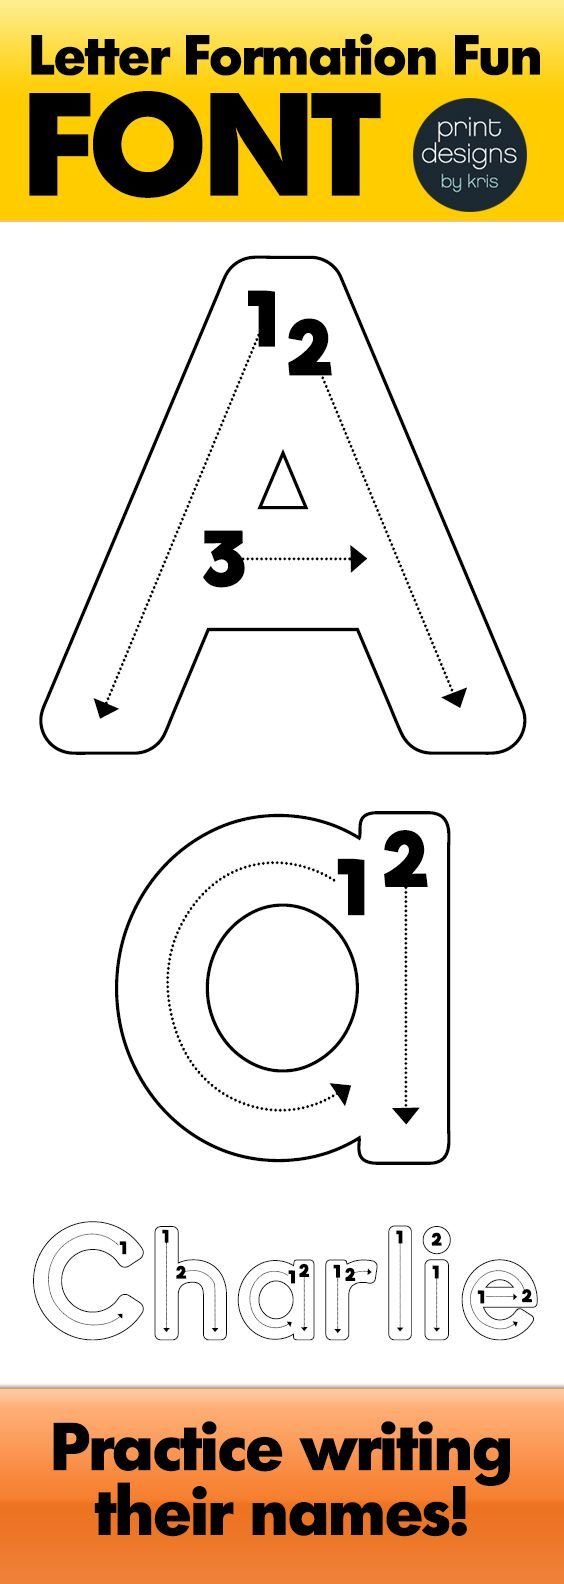 The perfect fonts for creating any and all of your letter formation and letter practicing materials. Type in your students names or your spelling words or whatever your heart desires with this fun letter formation and tracing font! The full uppercase and